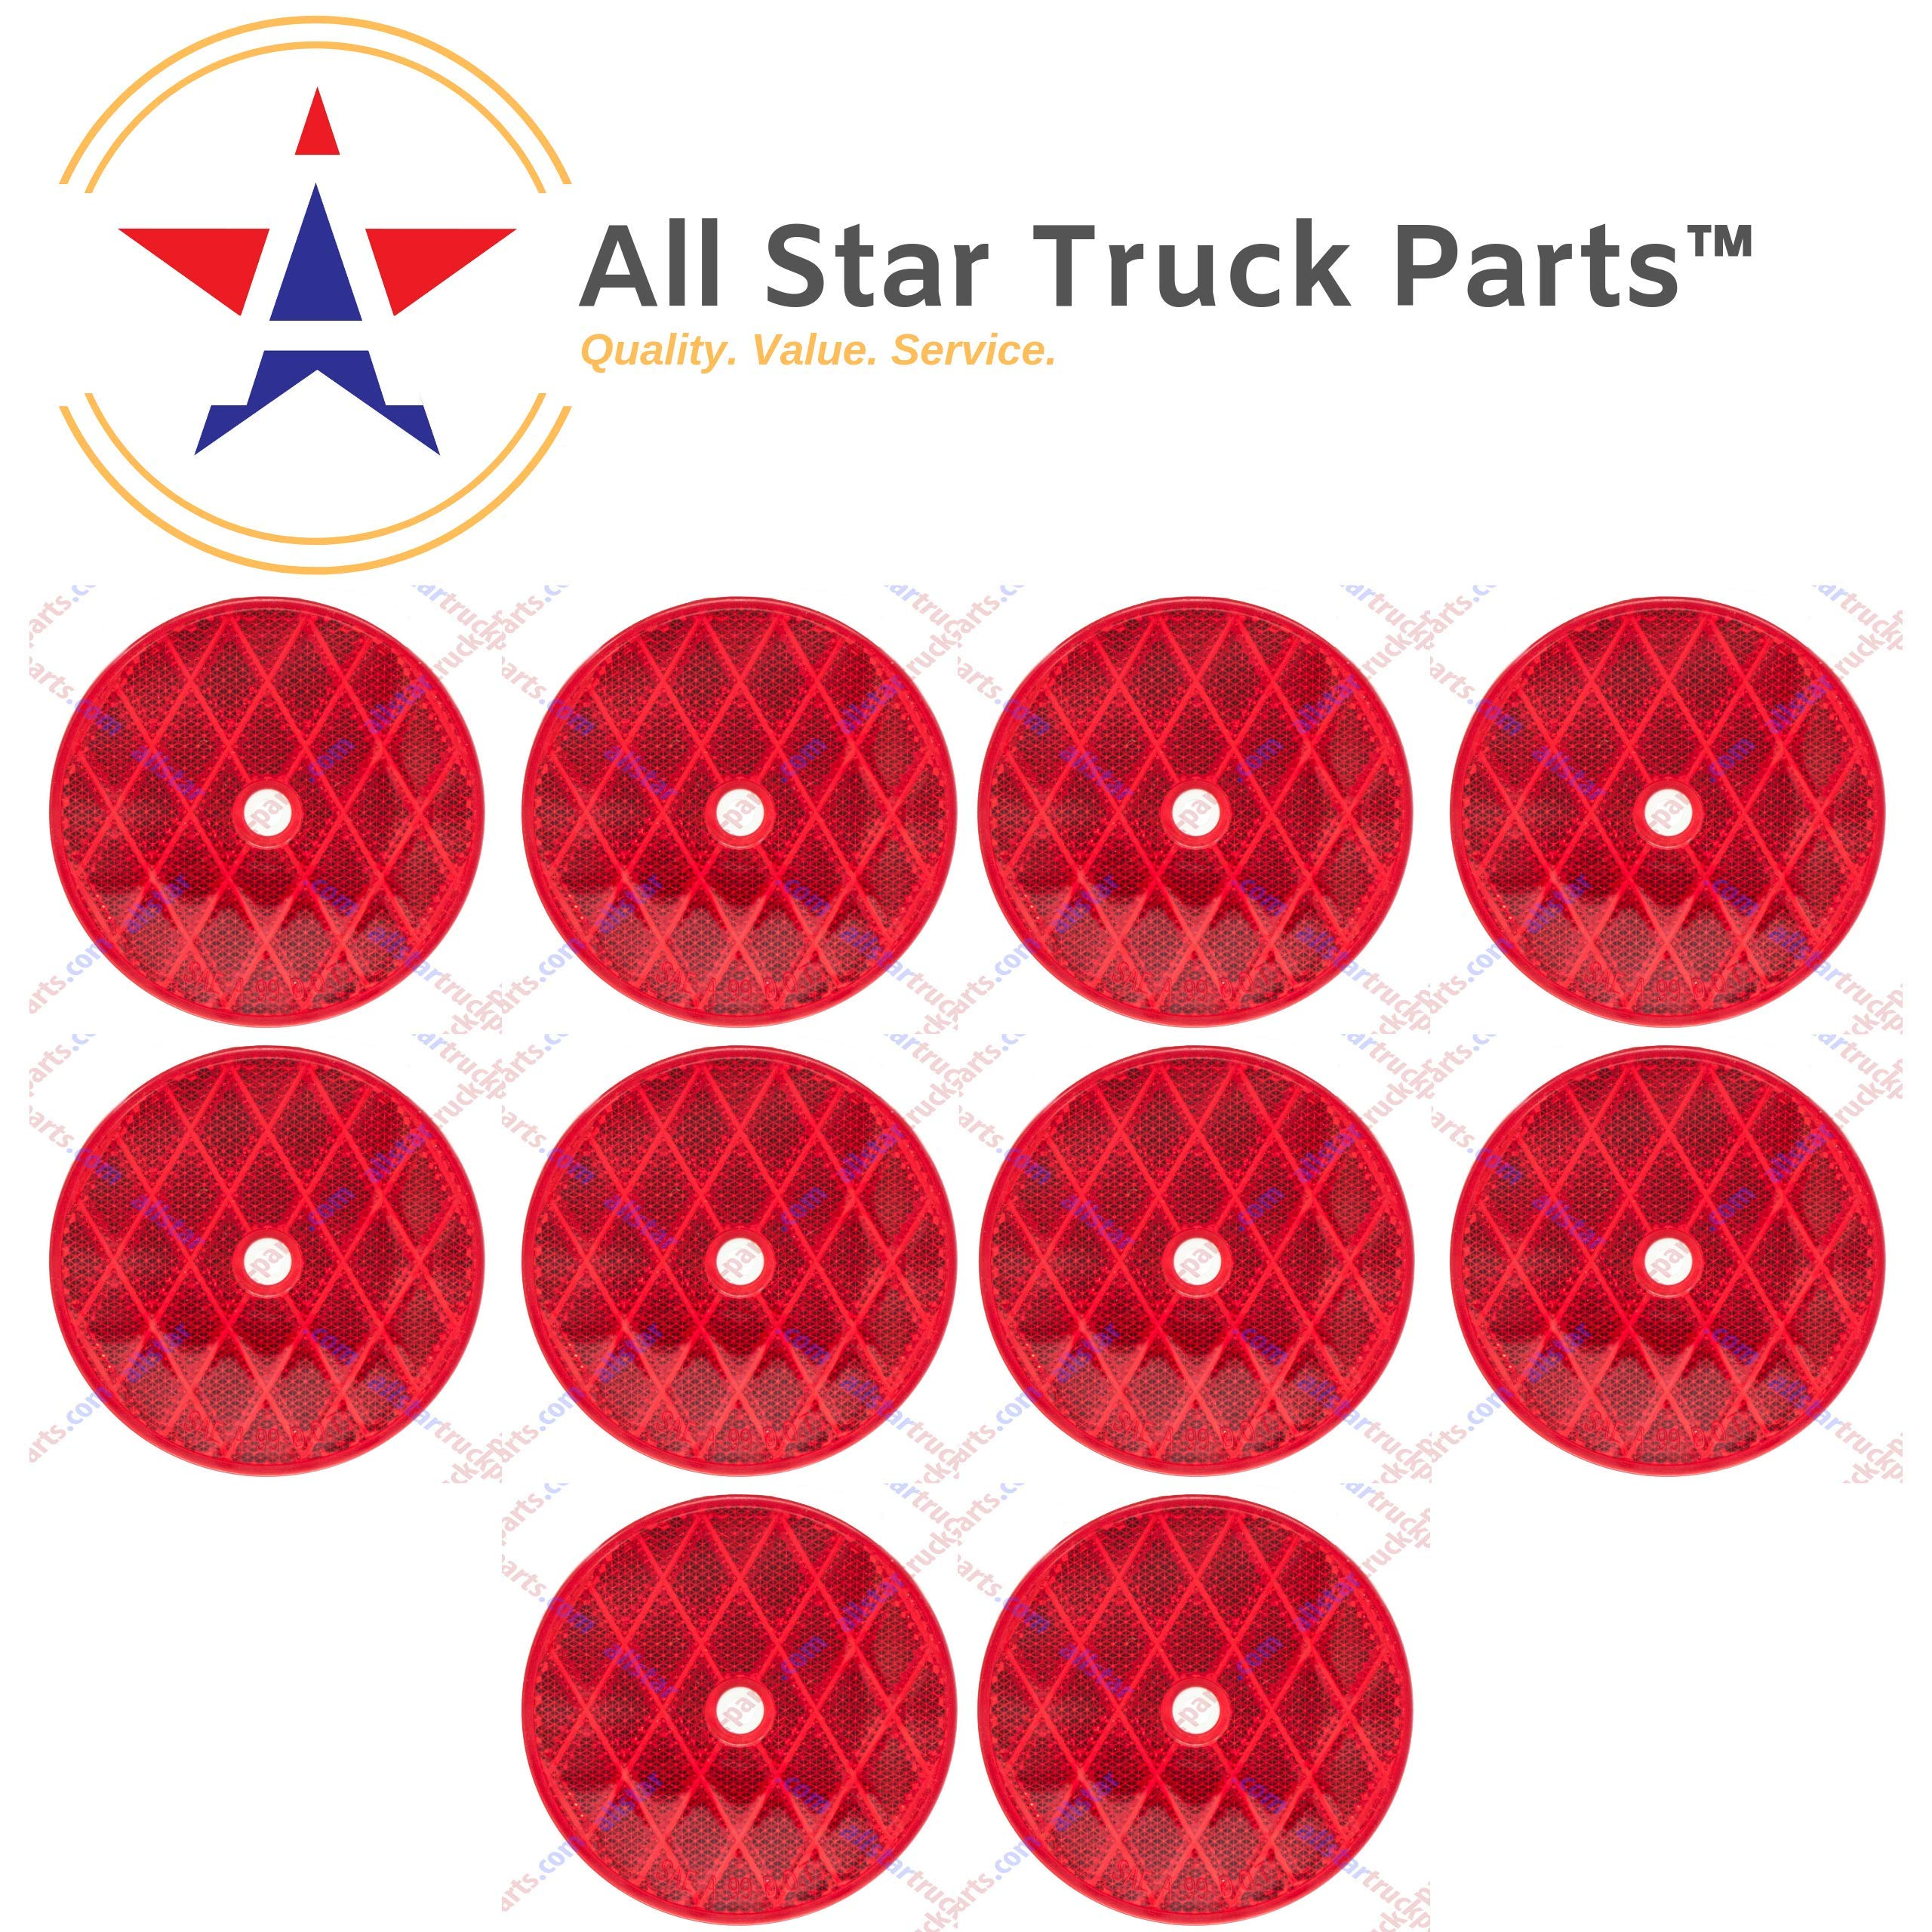 [ALL STAR TRUCK PARTS] Class A 3-3/16'' Round Red Reflector with Center Mounting Hole - 2 Pack for Trailers, Trucks, Automobiles, Mail Boxes, Boats, SUV's, RV's, Industrial Applications (Red, 10)